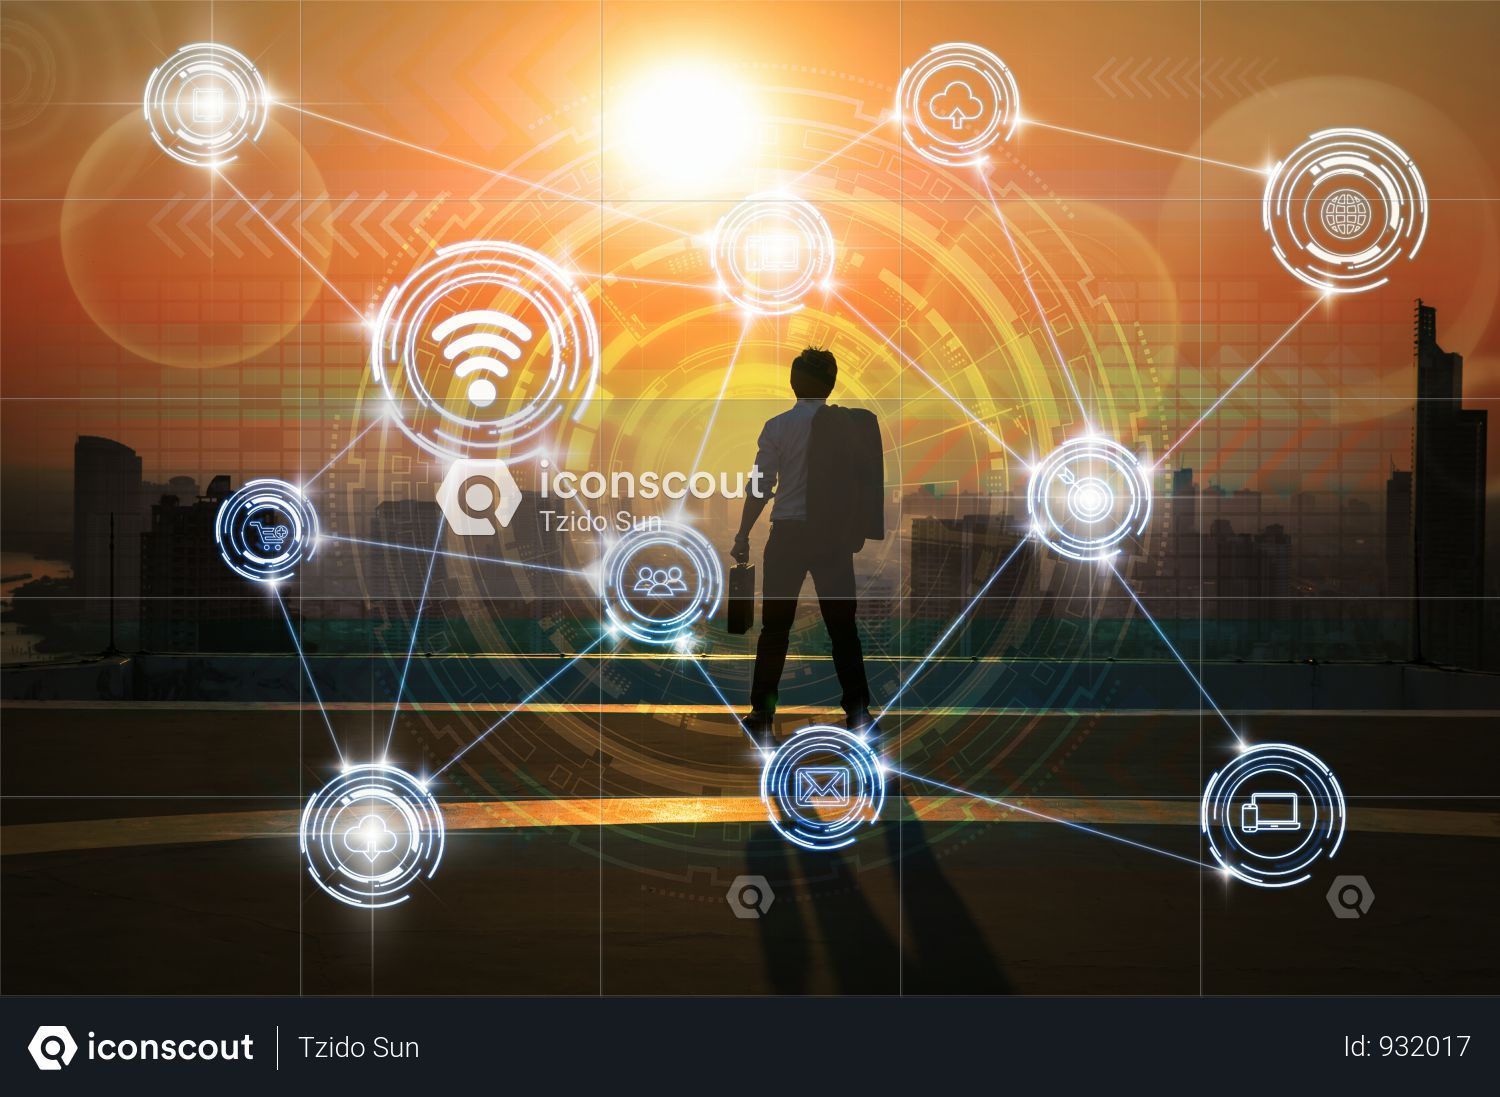 Premium Businessman Standing With Carrying The Bag And Looking Vision Over Wireless Communication Connecting Of Smart City Internet Of Things Technology Over Th Smart City Technology Photos Cityscape